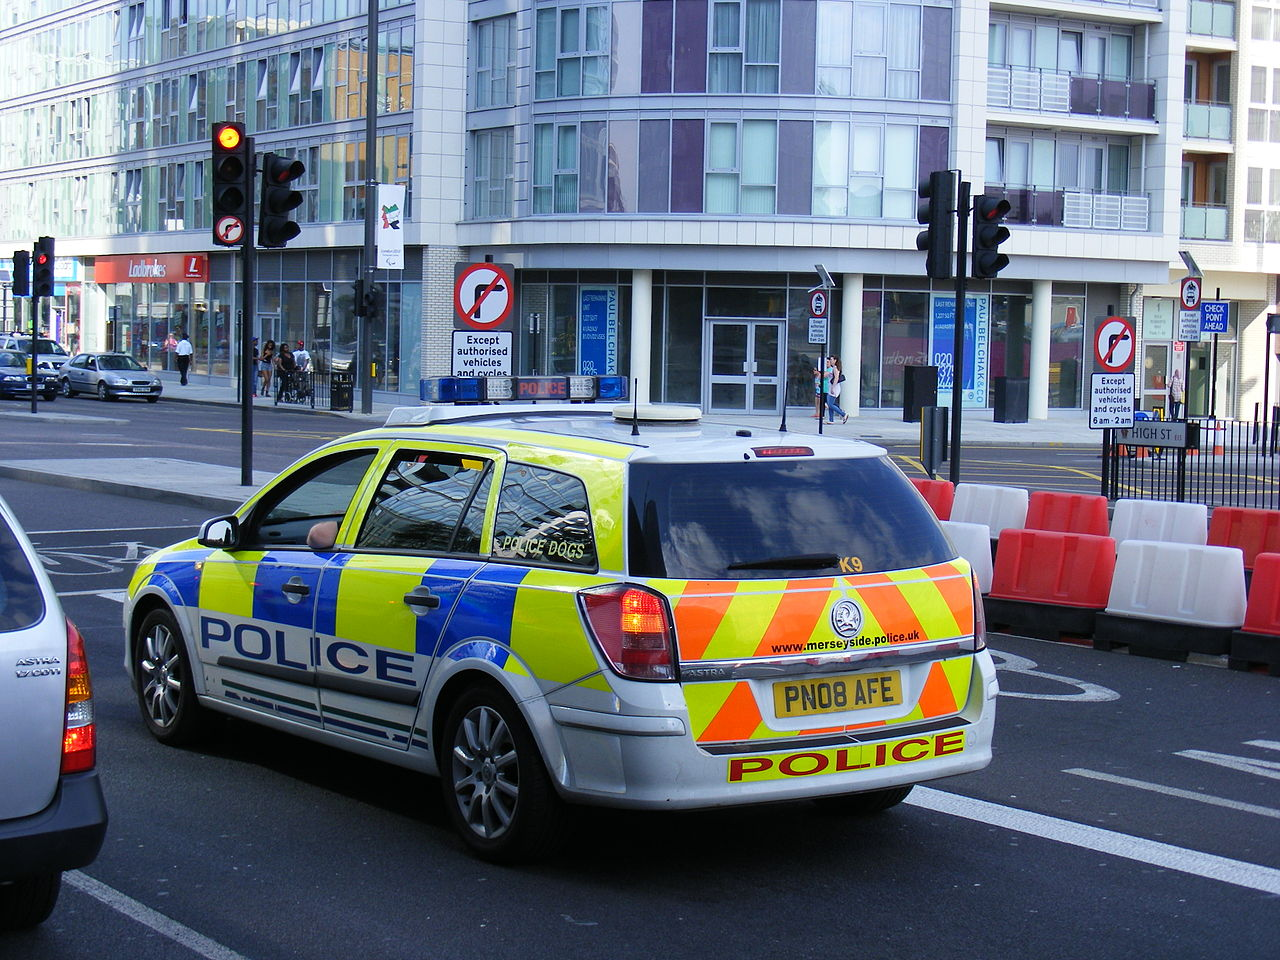 Merseyside Police car in London, UK